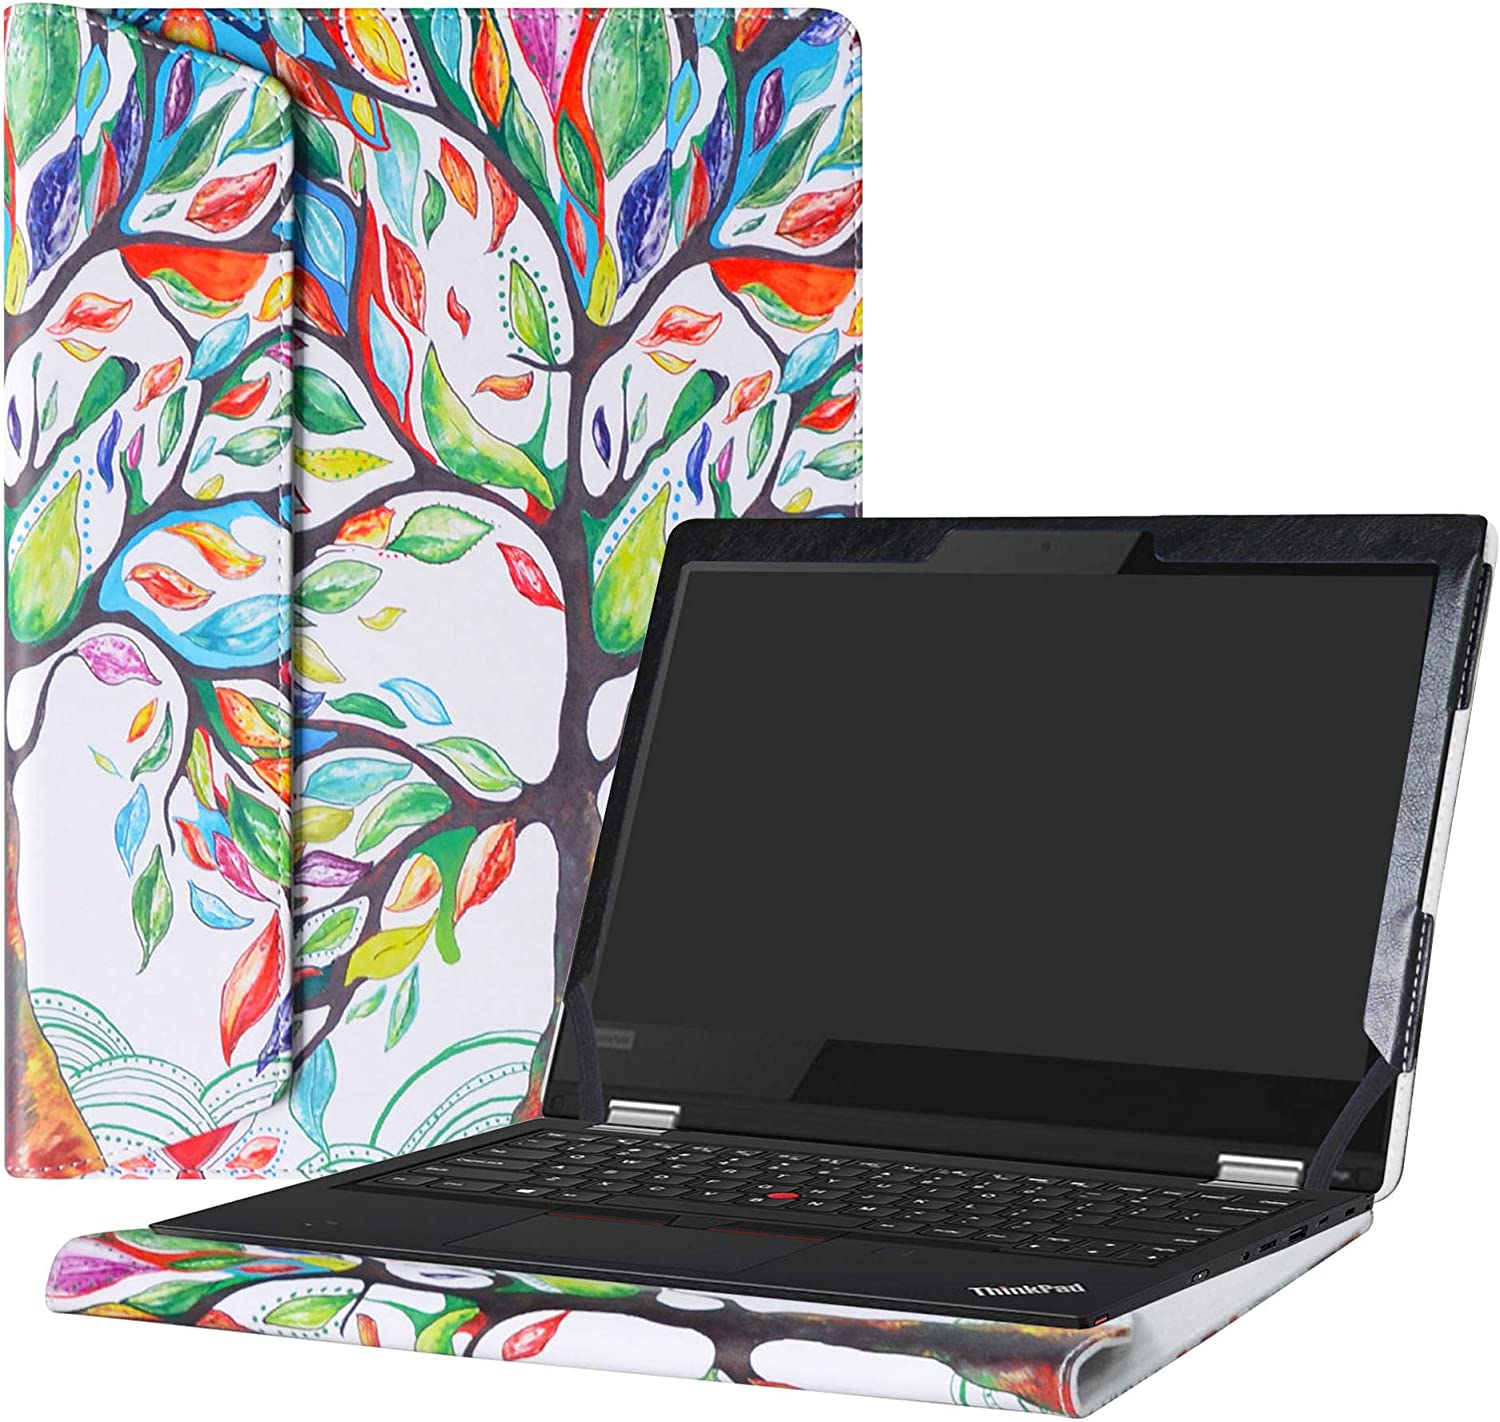 "Alapmk Protective Case Cover For 13.3"" Lenovo ThinkPad L380 Yoga/L390 Yoga/ThinkPad L380 L390 & Lenovo ThinkPad 13 Chromebook/ThinkPad 13 Series Laptop(Warning:Not fit Other model),Love Tree"